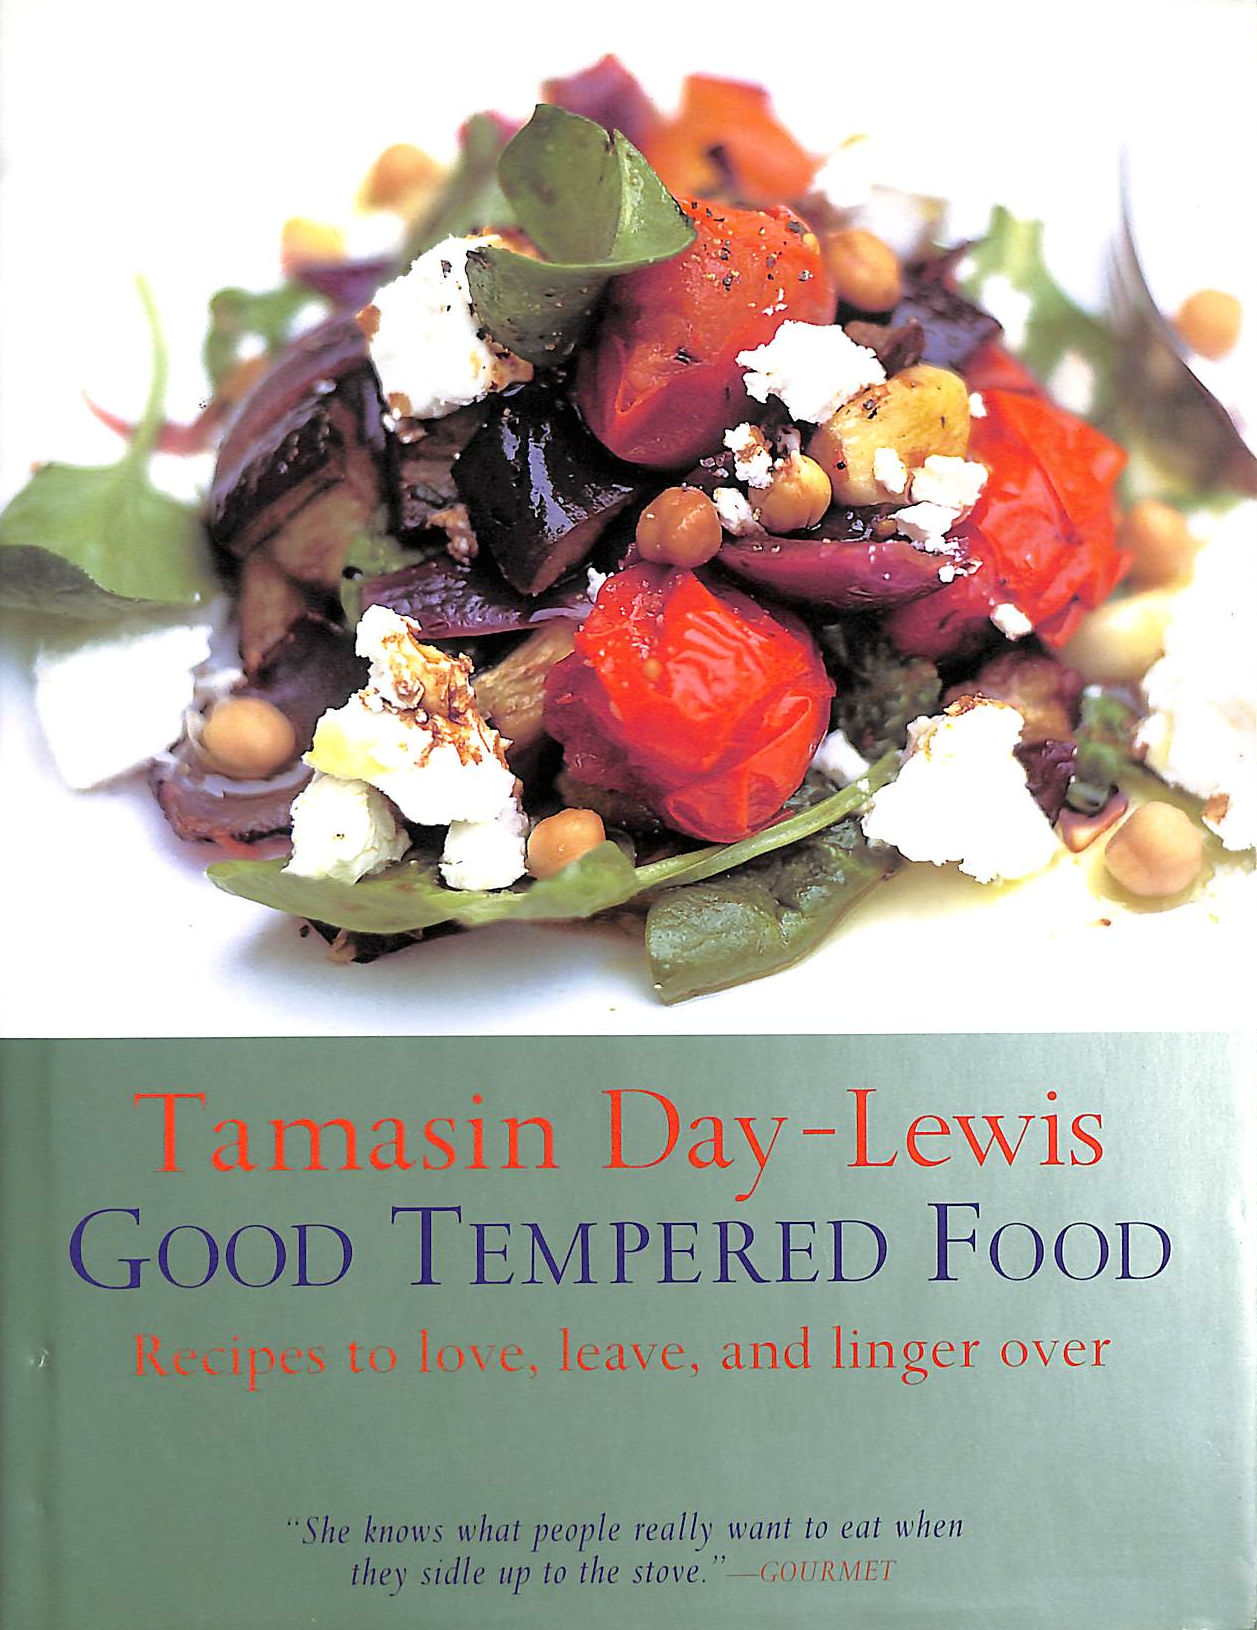 Image for Good Tempered Food: Recipes To Love, Leave, And Linger Over